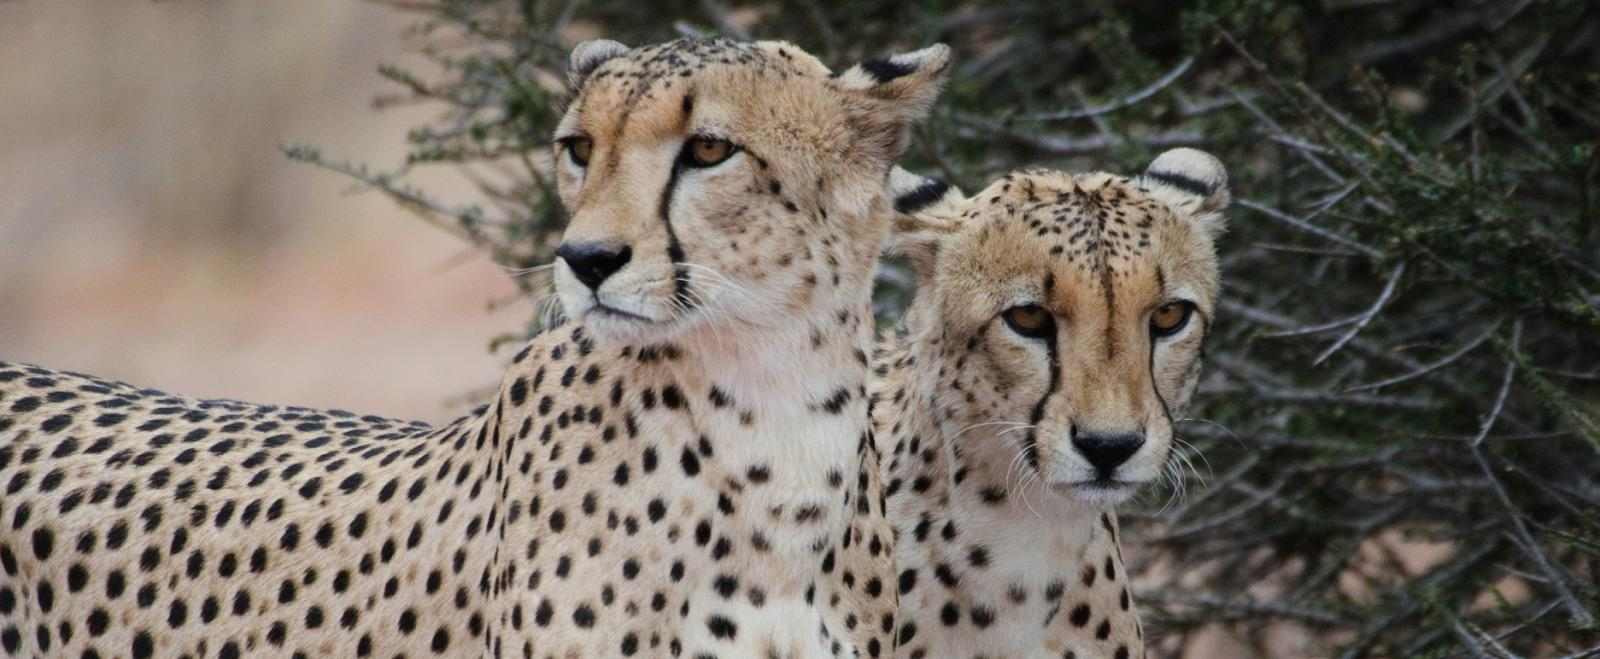 This picture shows two male cheetahs focused but resting in the shade and was taken on one of our wildlife conservation volunteer opportunities in Botswana.